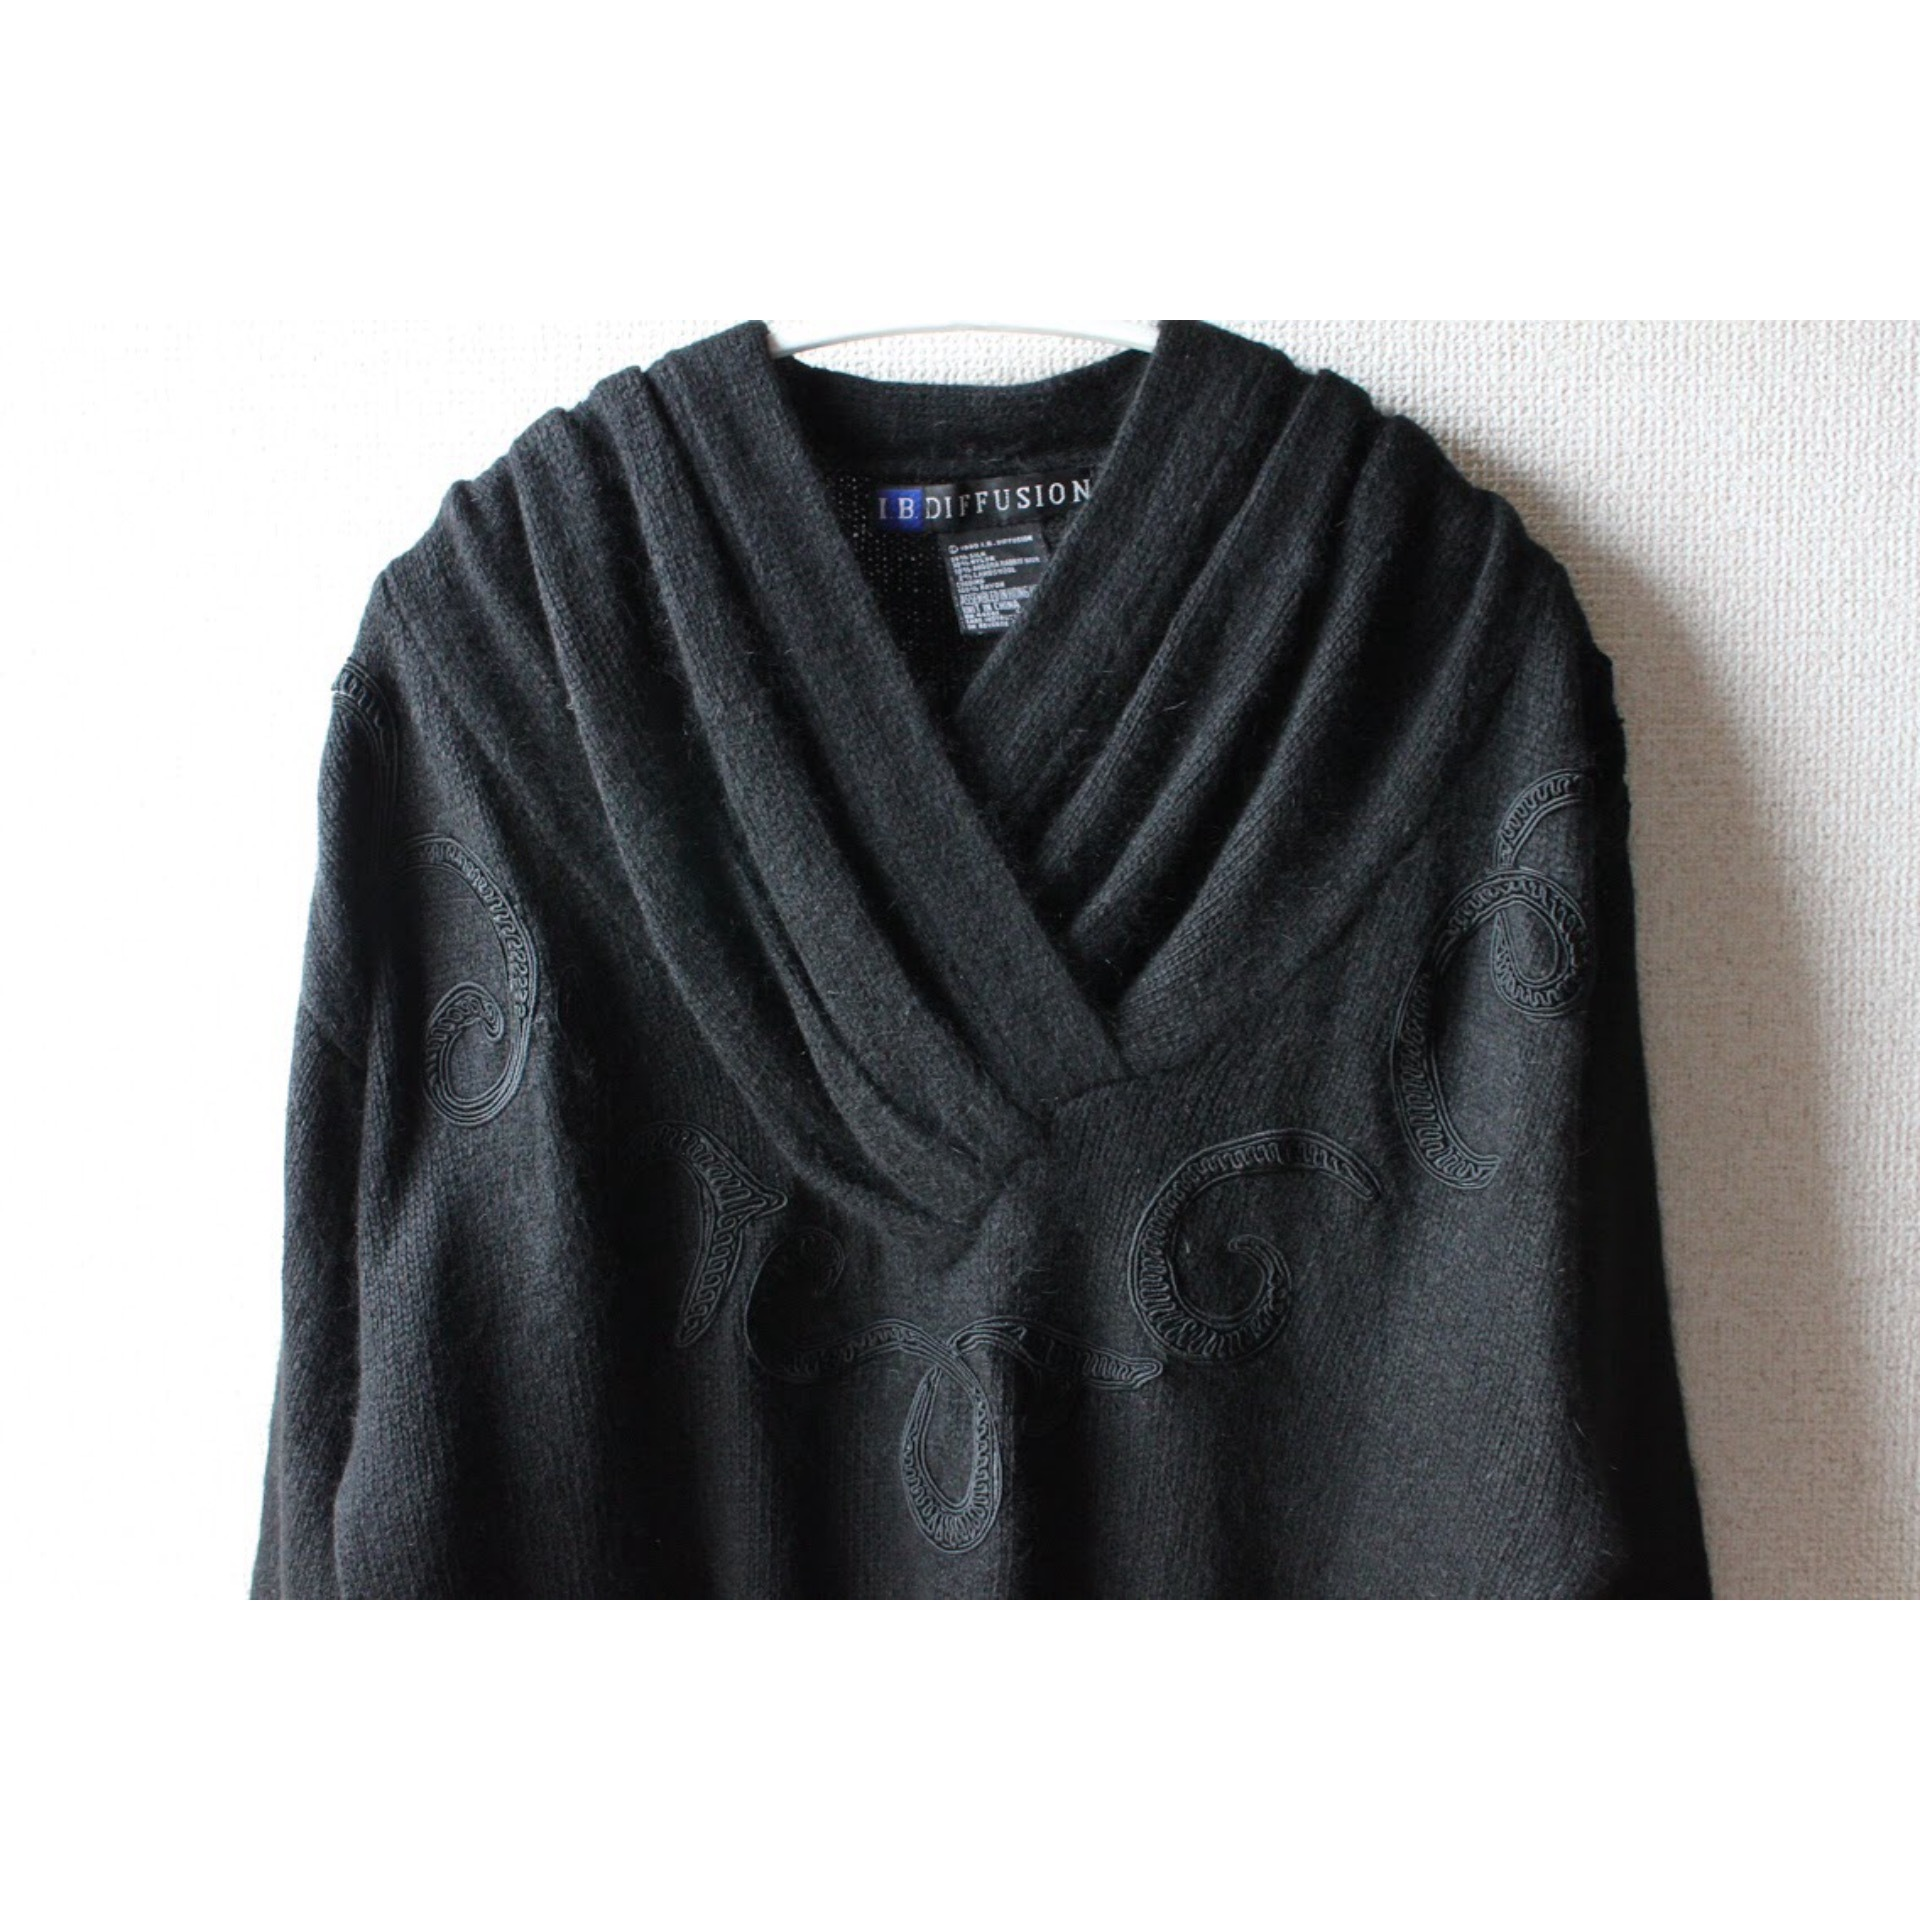 Vintage v neck sweater